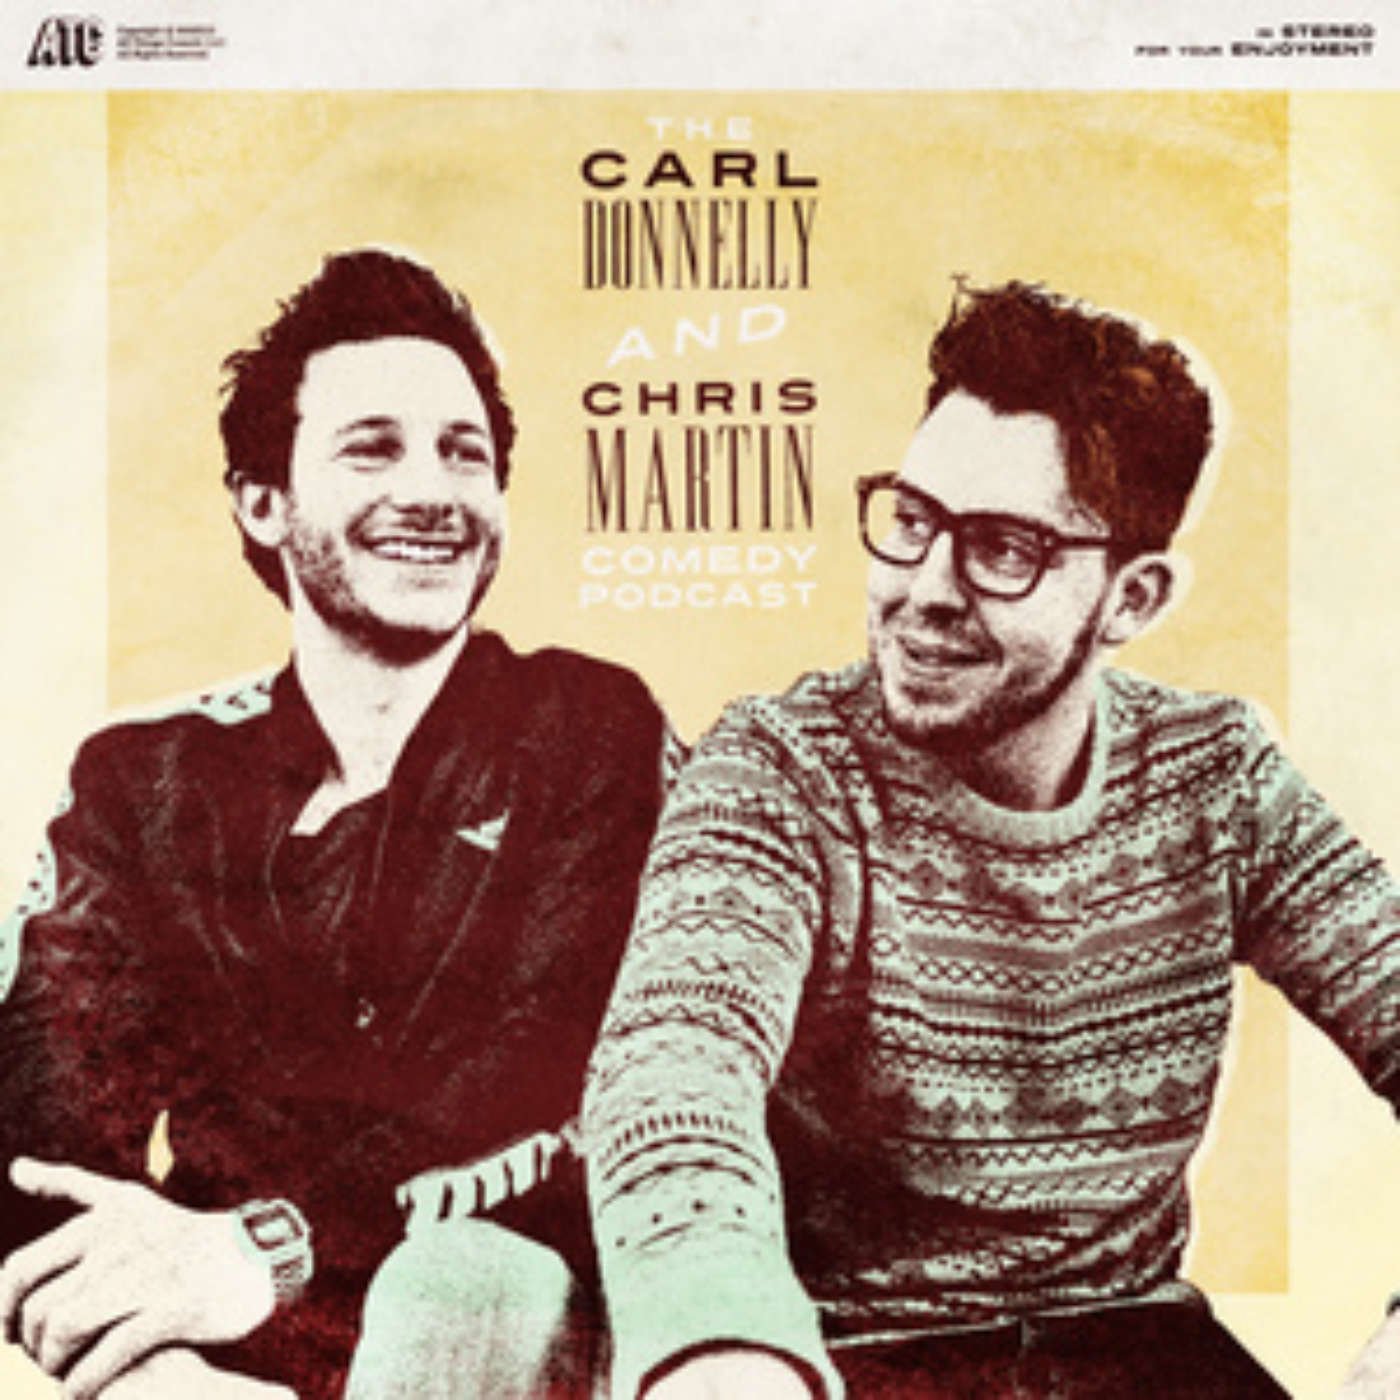 The Carl Donnelly and Chris Martin Comedy Podcast